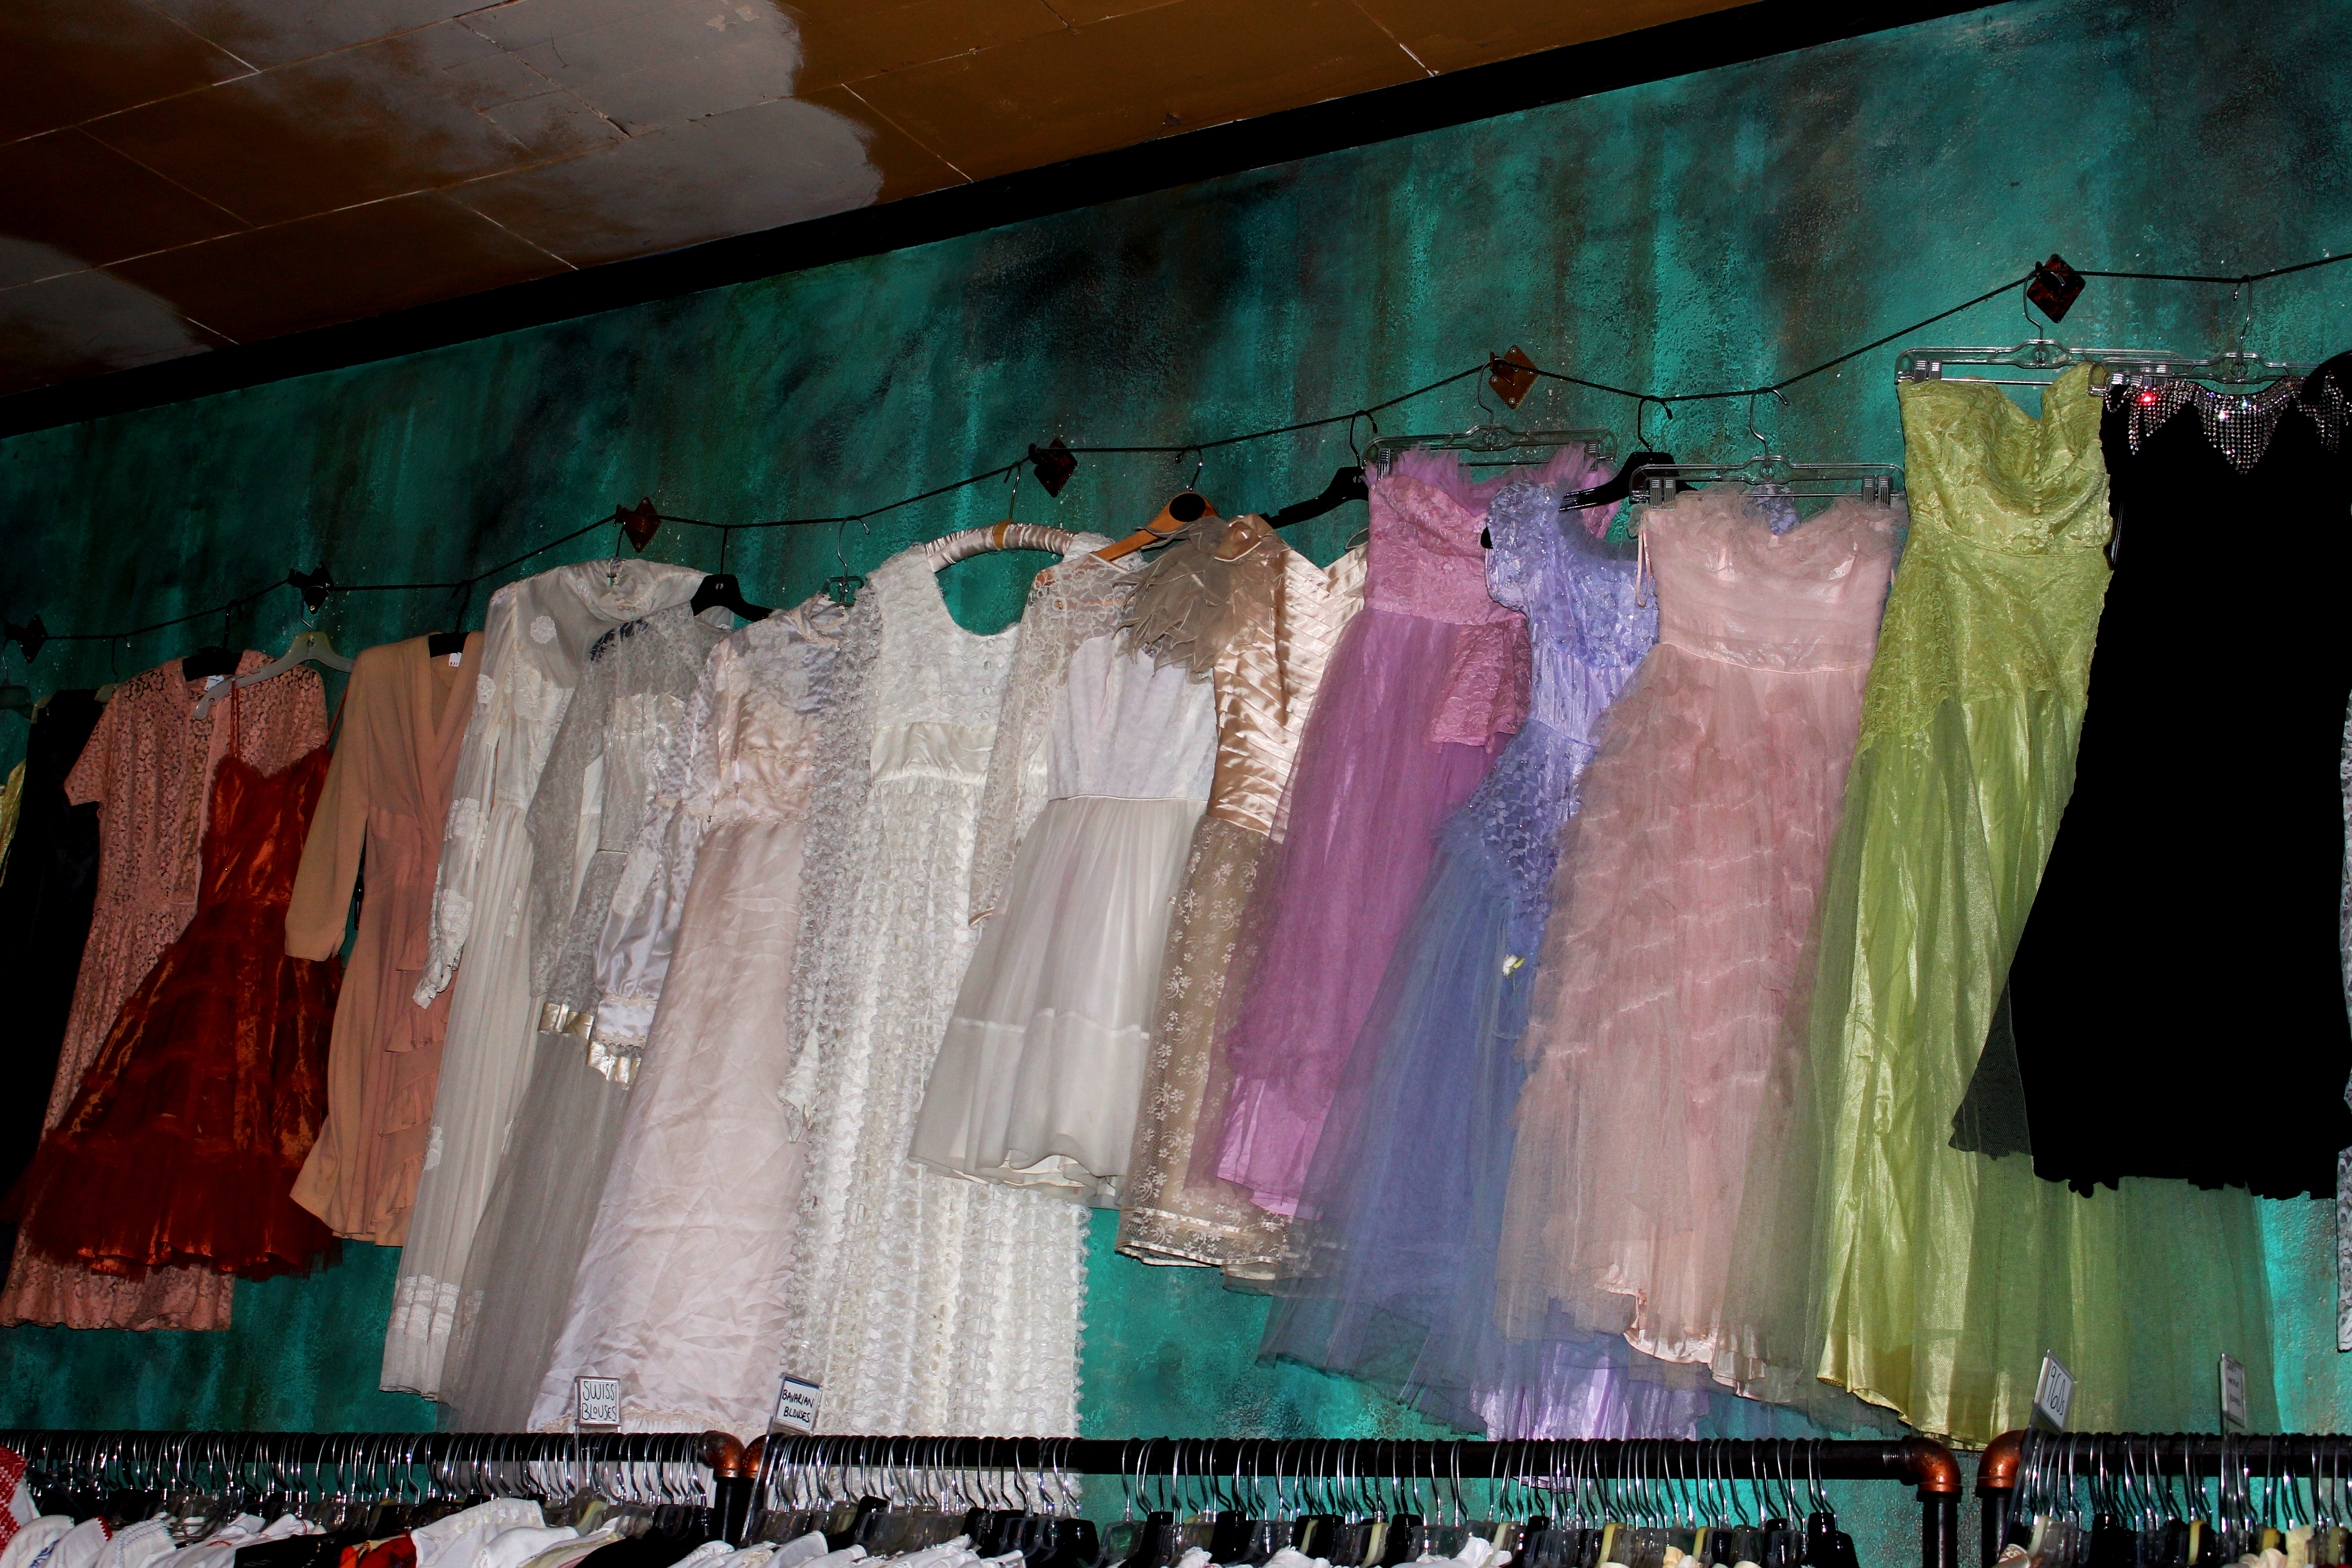 More dresses and costumes are hung on the walls. Credit: Fiona Belk / M-A Chronicle.